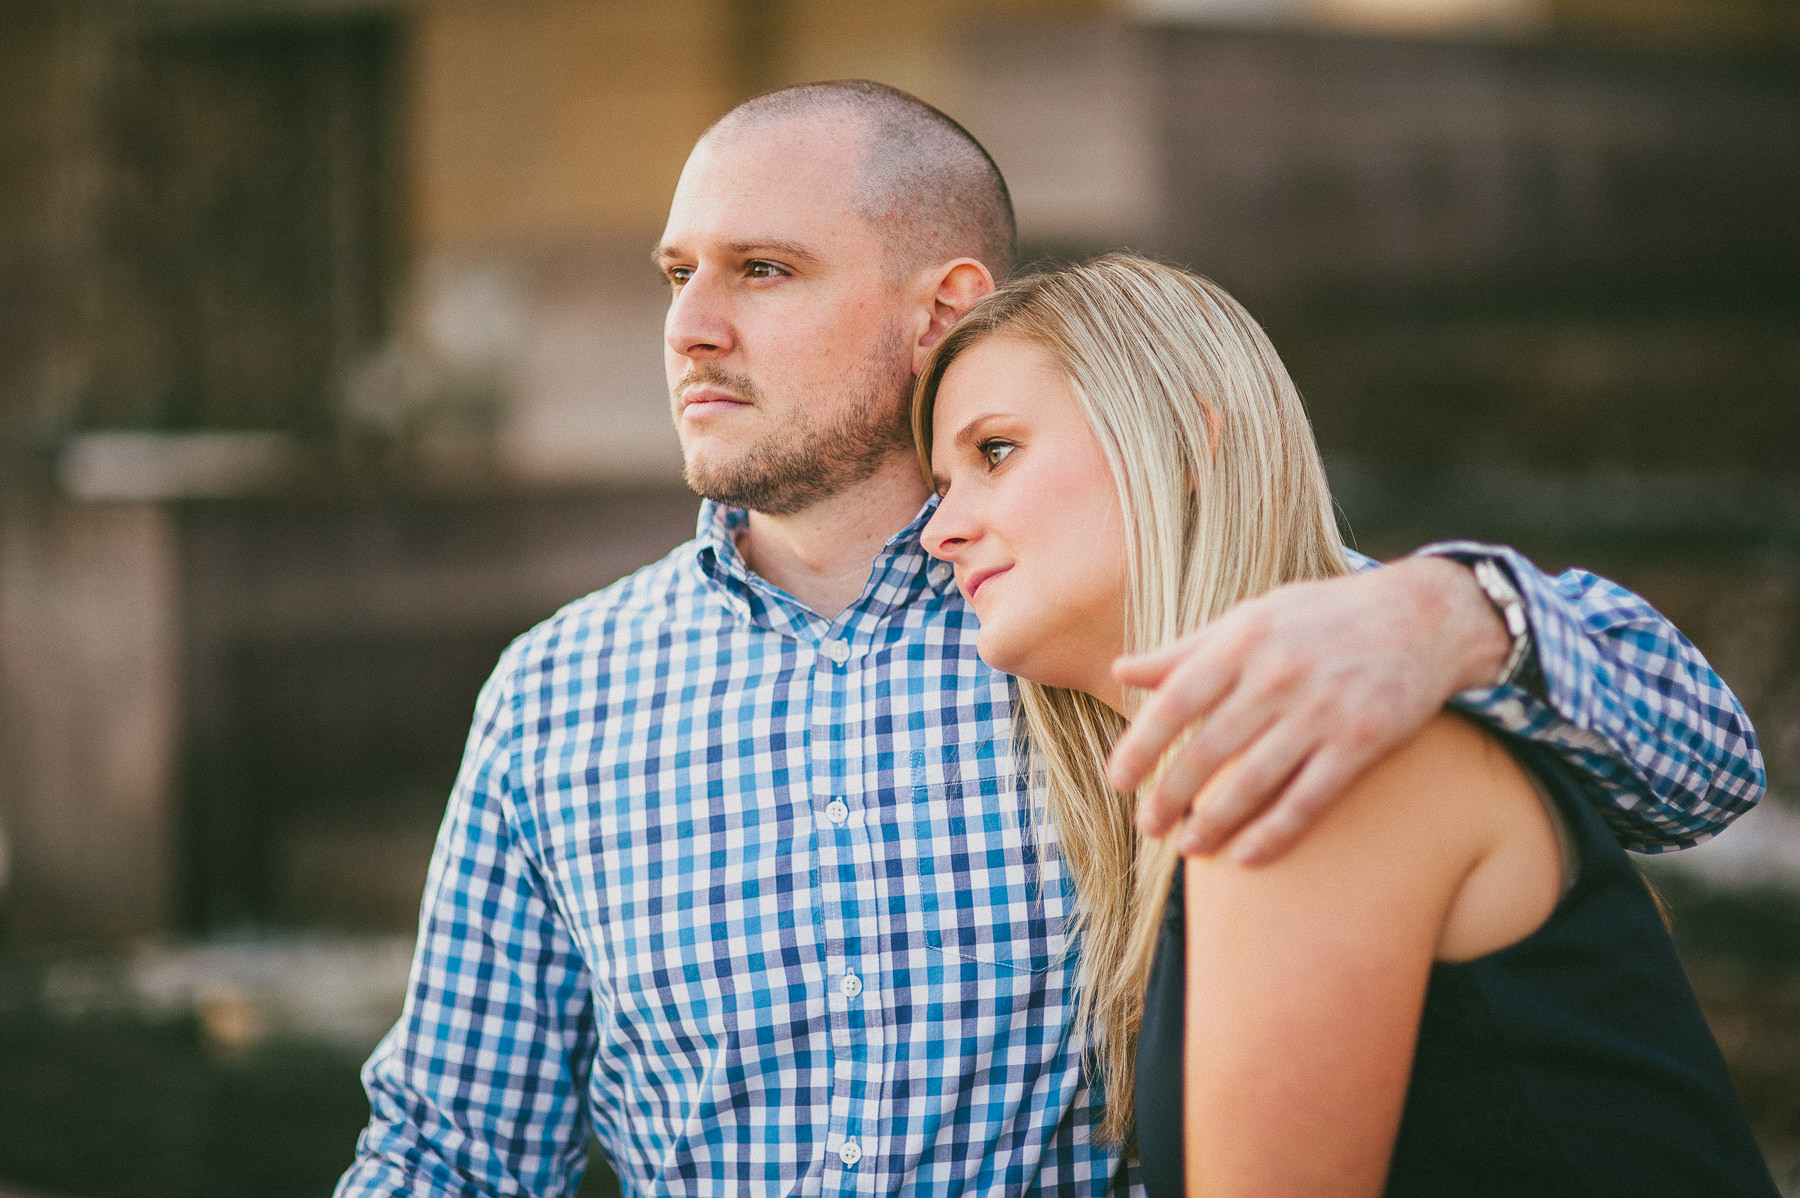 breighton-and-basette-photography-copyrighted-image-blog-anna-marie-and-steve-engagement-014.jpg